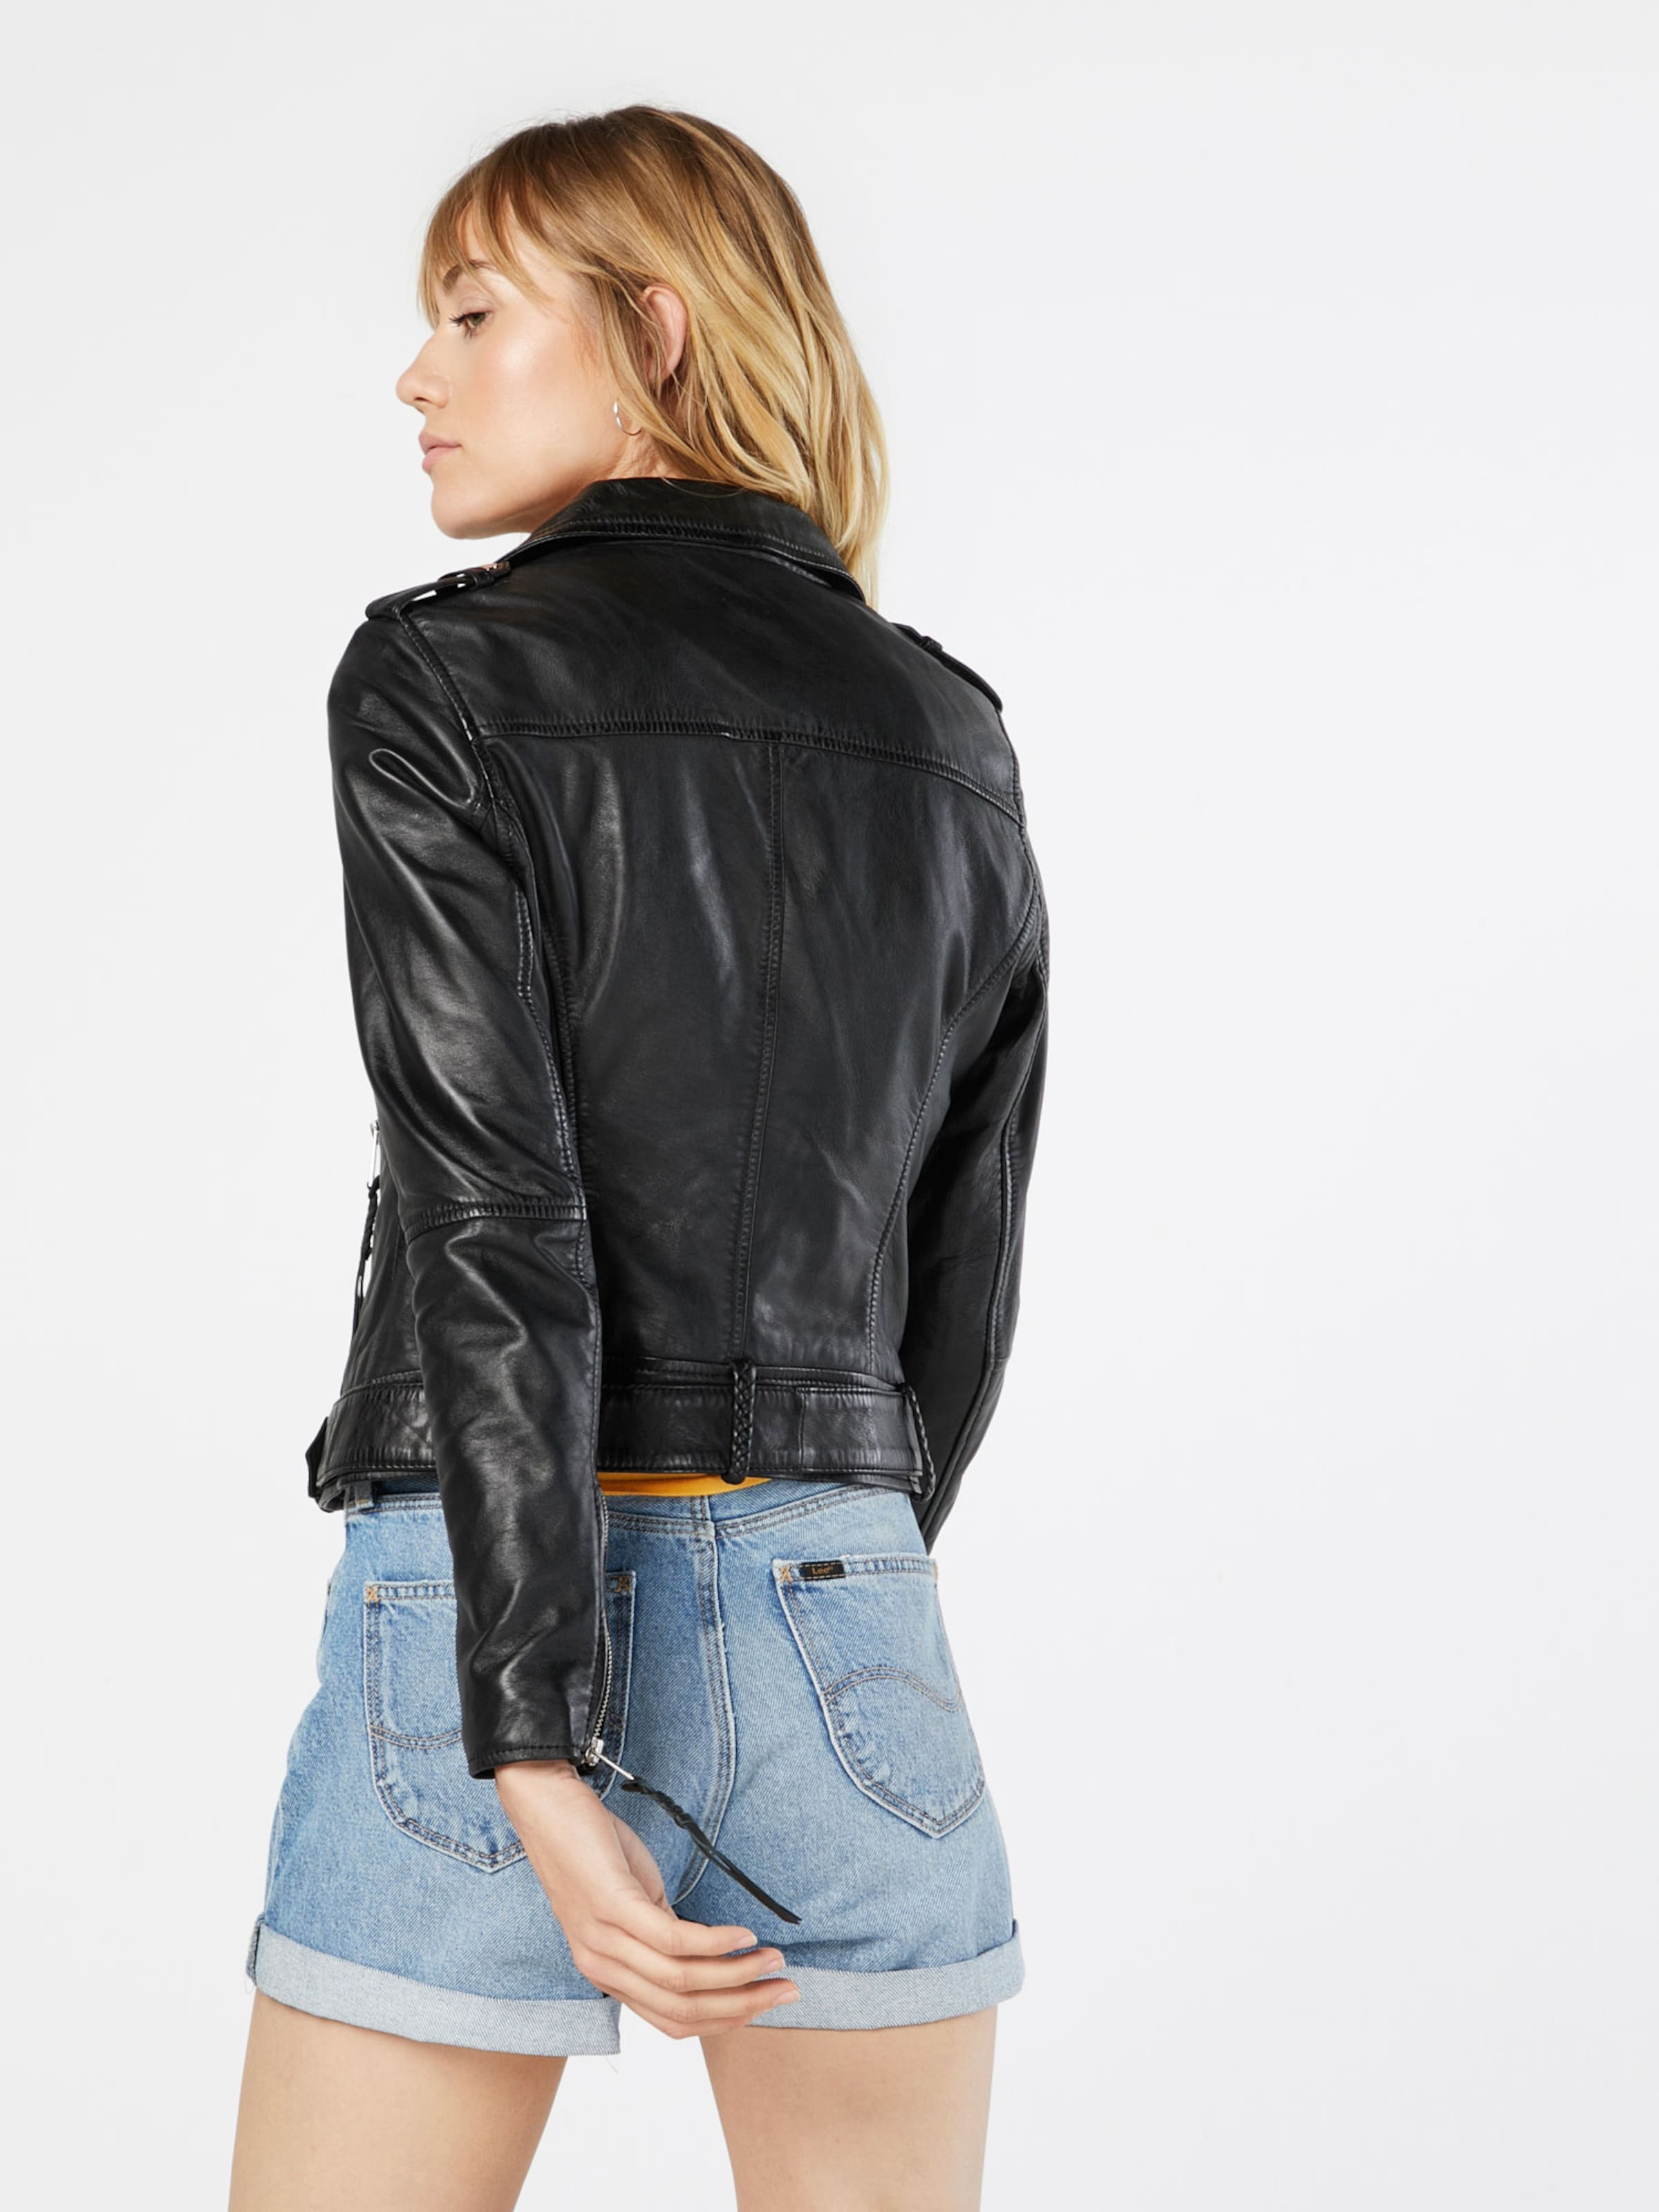 Review Damen Lederjacke Belted Biker schwarz | 04060479043898